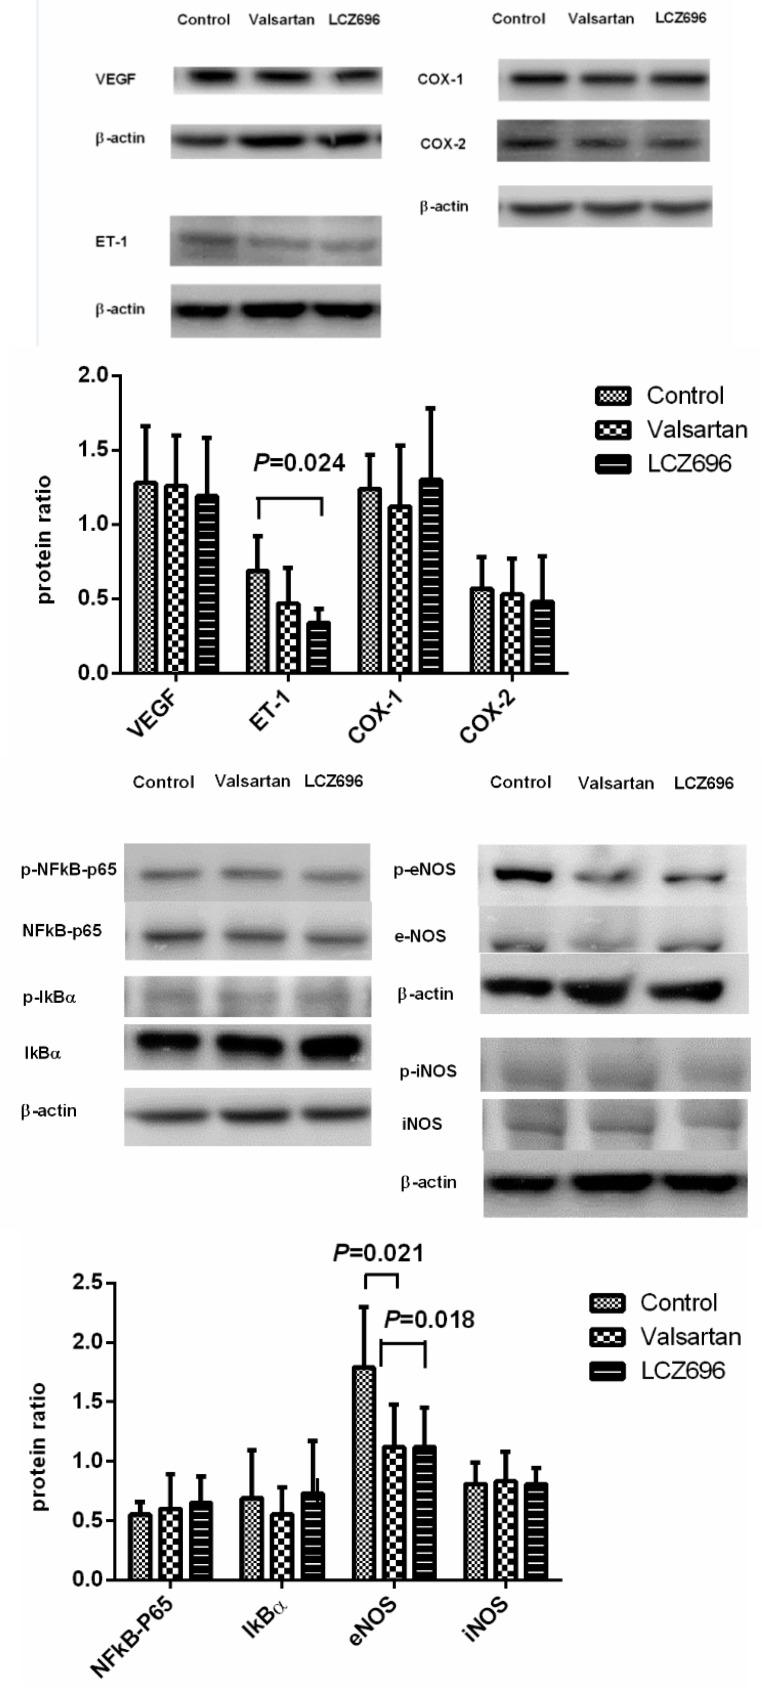 Hepatic protein expressions of control, valsartan-, LCZ696-treated PVL rats. The densitometric quantification and representative Western blot images are shown. The upper panel reveals that the endothelial-1 (ET-1) protein expression was significantly downregulated by LCZ696 compared to the control group. The vascular endothelial growth factor (VEGF), cyclooxygenase (COX)-1, and COX-2 protein expressions were not significantly different among control, valsartan-, and LCZ696-treated PVL rats. The lower panel indicates that the phosphorylated-endothelial nitric oxide synthase (eNOS) protein expressions were downregulated by valsartan and LCZ696 treatments. The phosphorylated-nuclear factor kappa B (NFκB) p65, phosphorylated-antinuclear factor of kappa light polypeptide gene enhancer in B-cells inhibitor alpha (IκBα), and phosphorylated-inducible nitric oxide synthase (iNOS) protein expressions were not affected by valsartan and LCZ696.